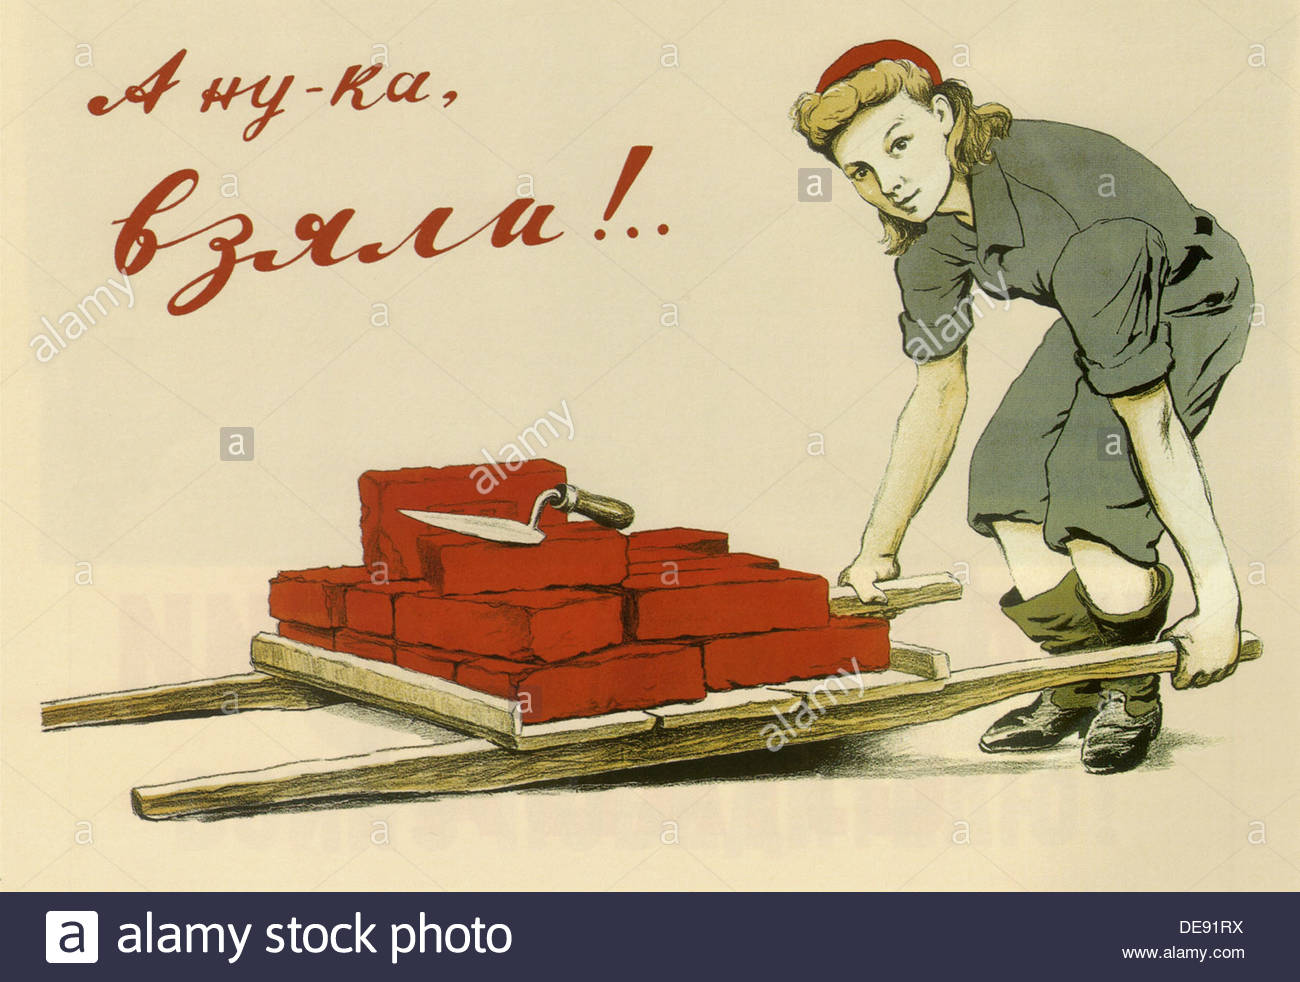 Come on, let's lift it!, 1944. Artist: Serebryany, Iosiph Alexandrovich (1907-1979) - Stock Image